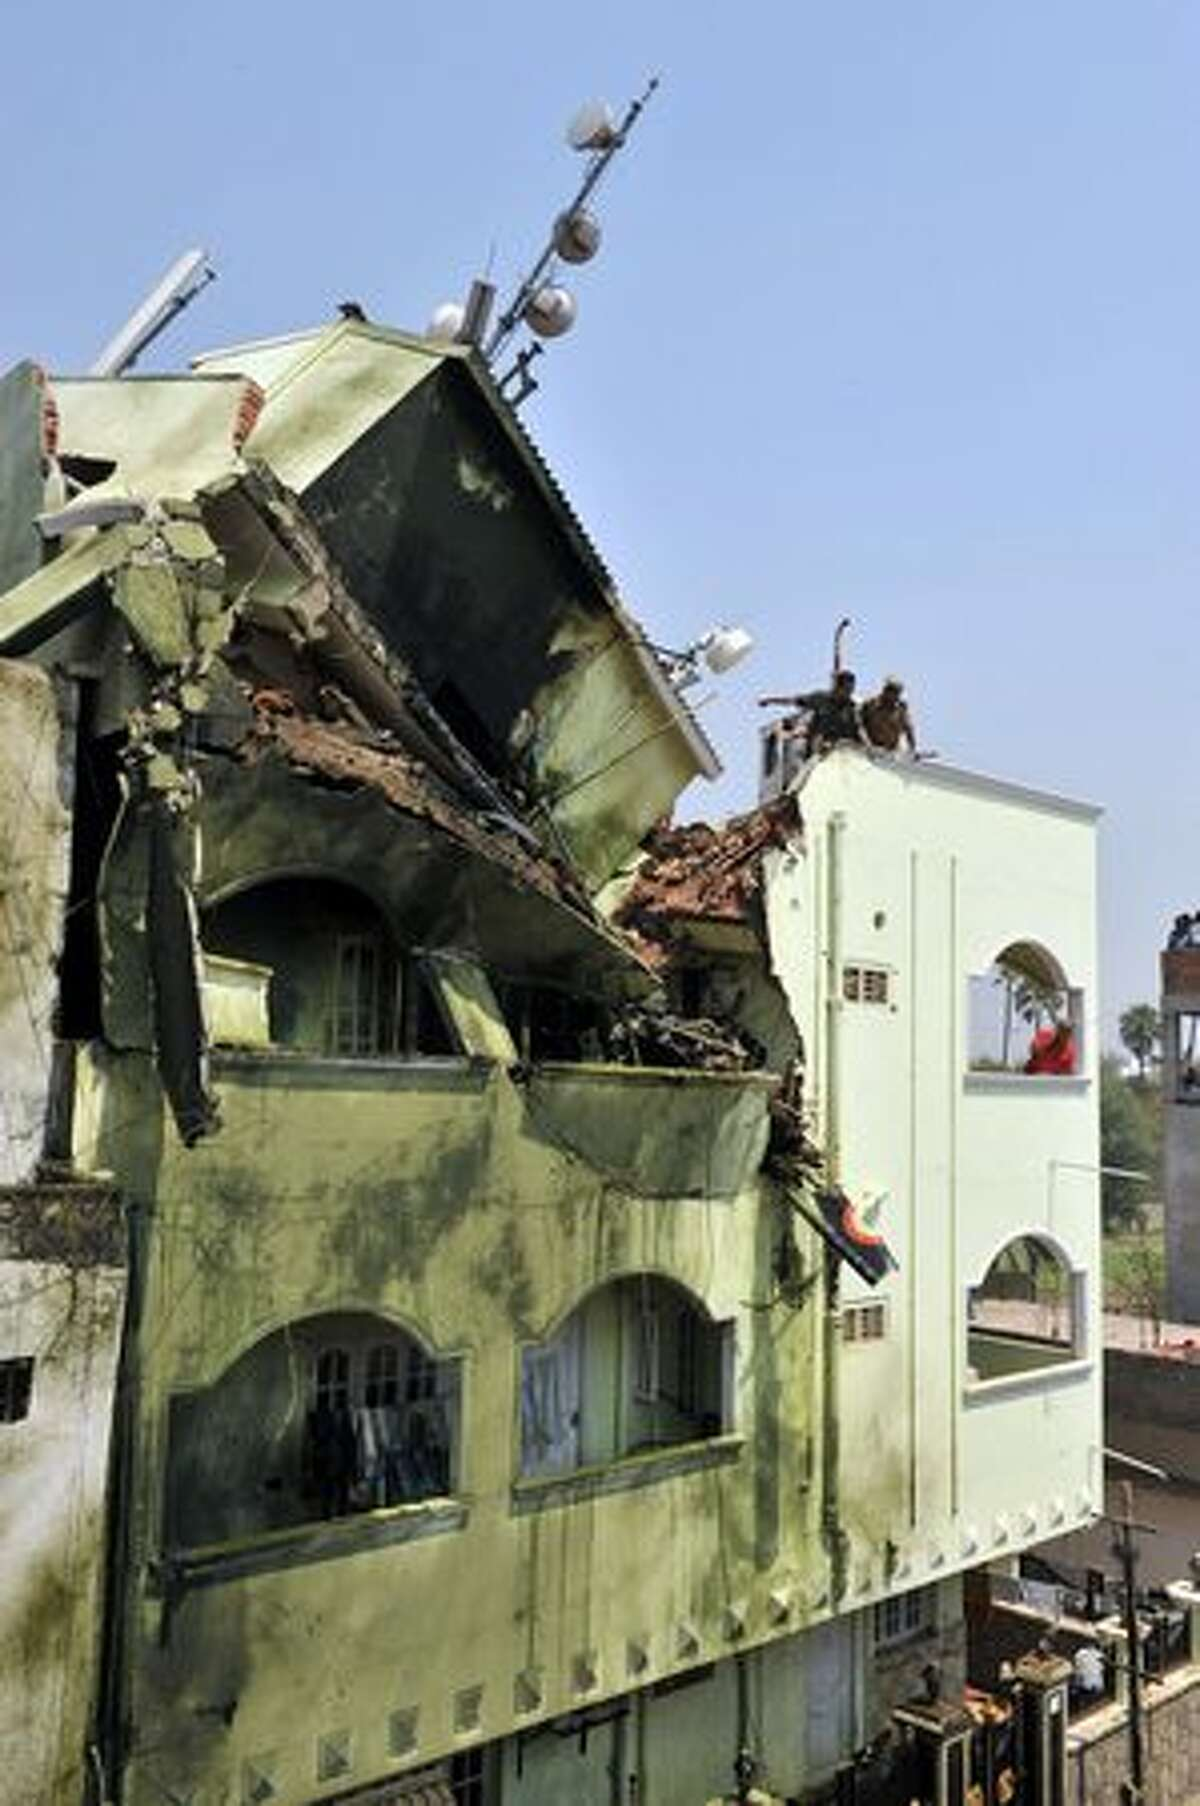 Indian residents and rescue officials search the wreckage of a building after an Indian Naval aircraft from the Aerobatic Team 'Surya Kiran' crashed during the India Aviation 2010 show at Begumpet Airport in Hyderabad on March 3, 2010. A navy aircraft taking part in an acrobatics show on the first day of an air show in the southern Indian city. The plane, a two-seater Kiran MK-II built by the state-run Hindustan Aeronautics, was part of a four-plane formation when it crashed. The accident occurred on the opening day of the India Aviation 2010 show, a five-day civil aviation exhibition.